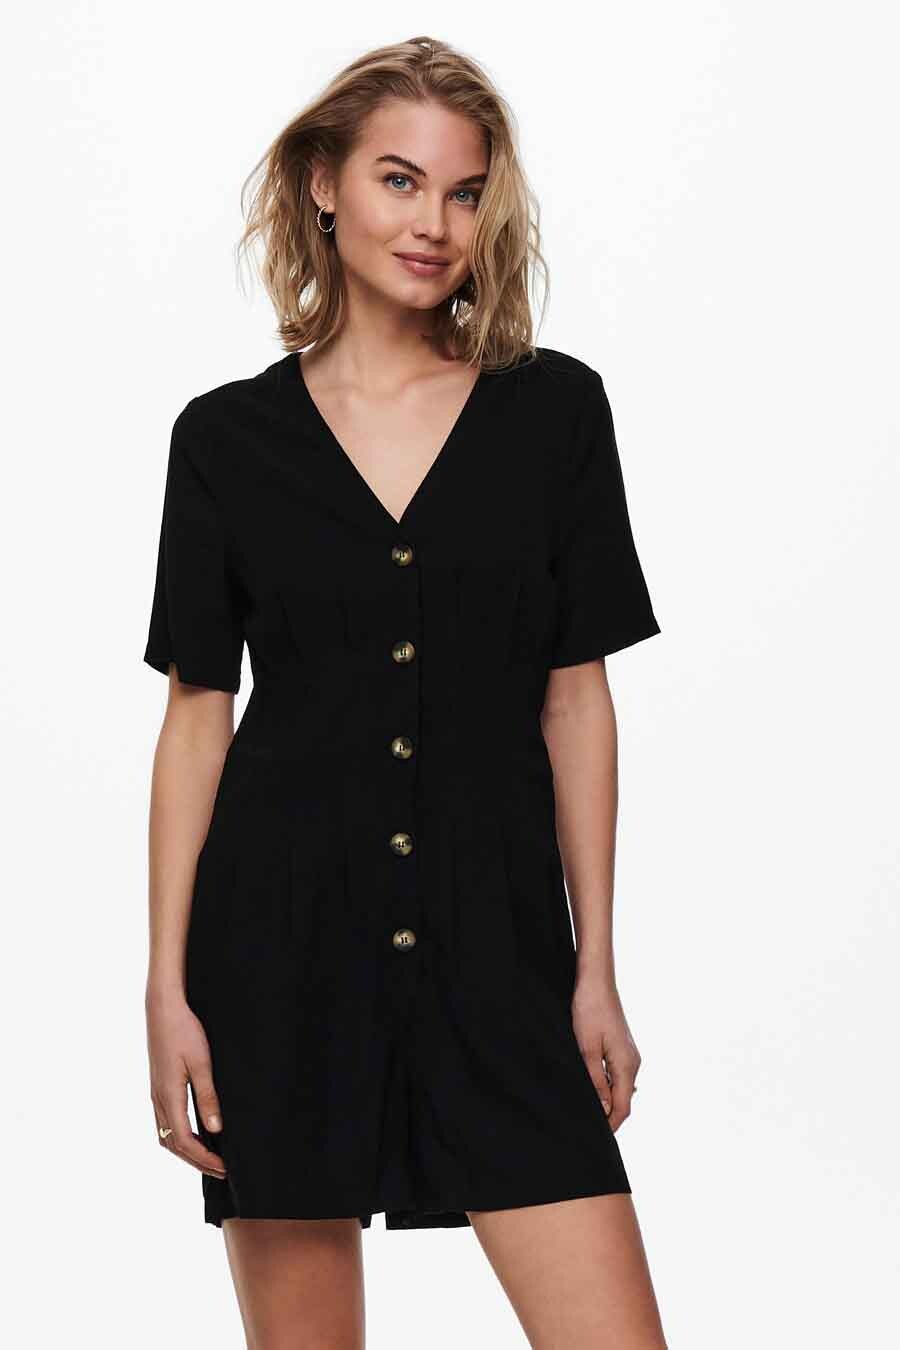 ONLY® Playsuit, Zwart, Dames, Maat: L/M/S/XS